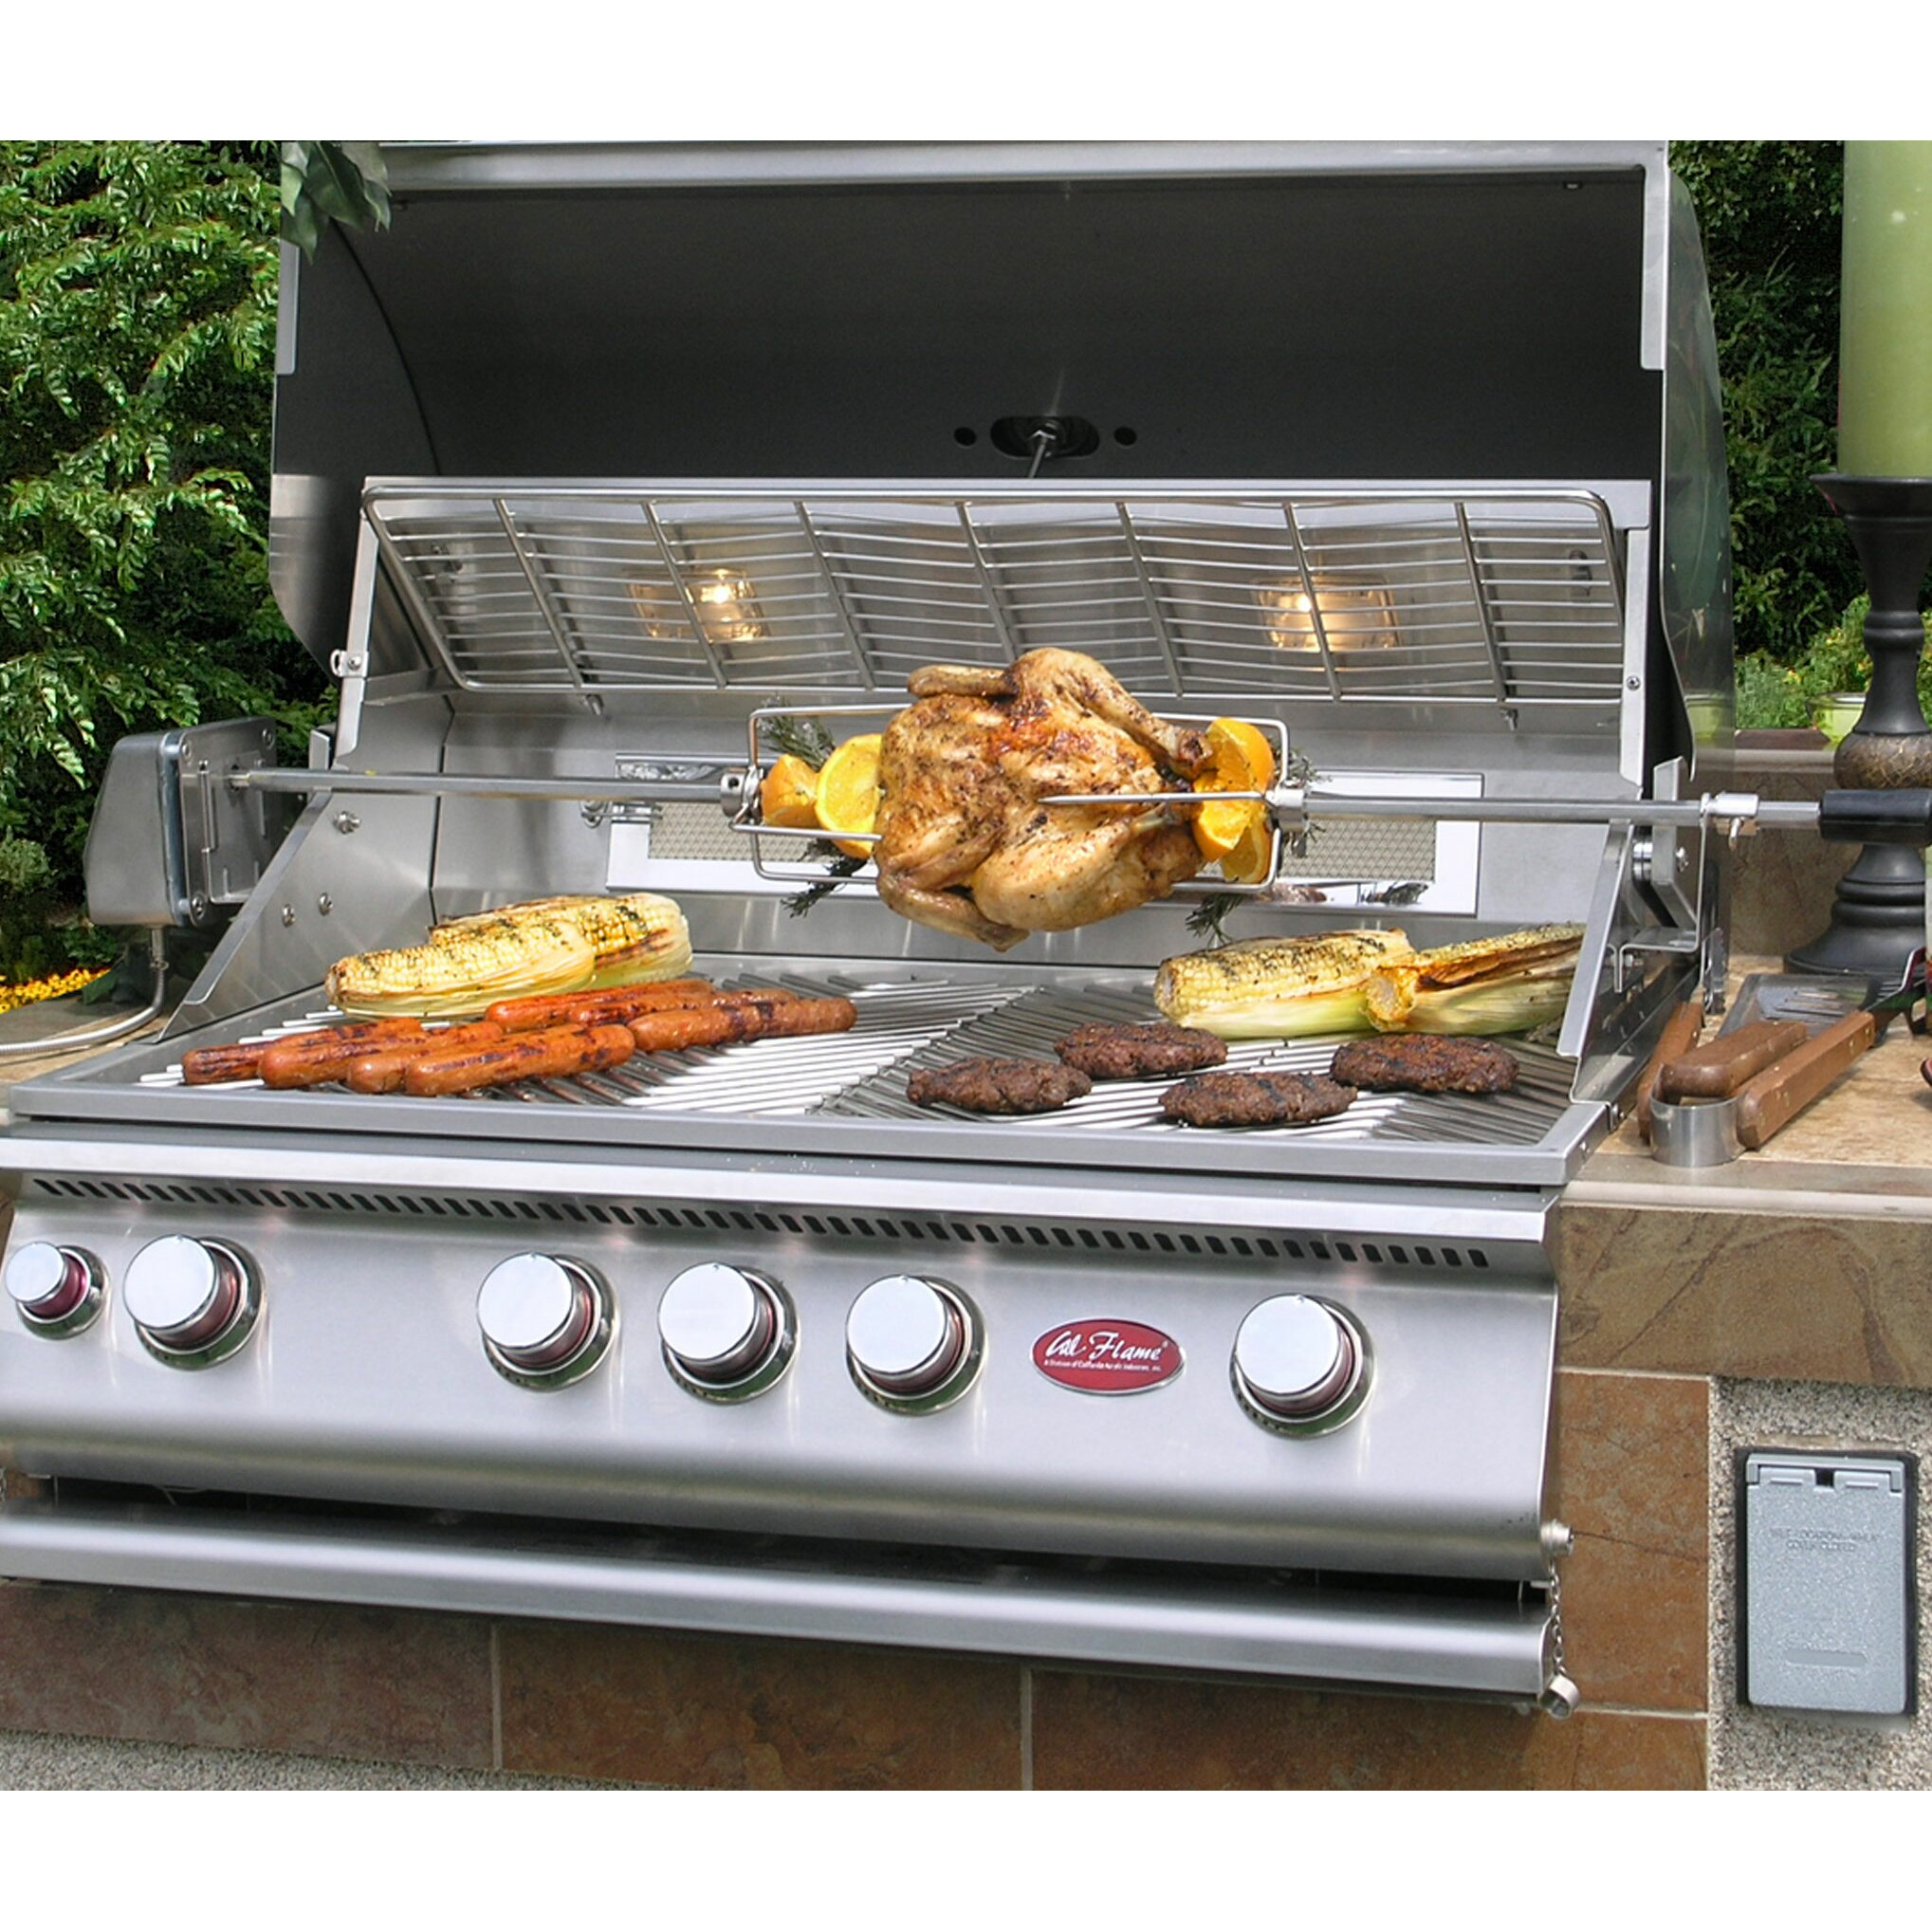 CalFlame 4-Burner Built-In Gas Grill | Wayfair